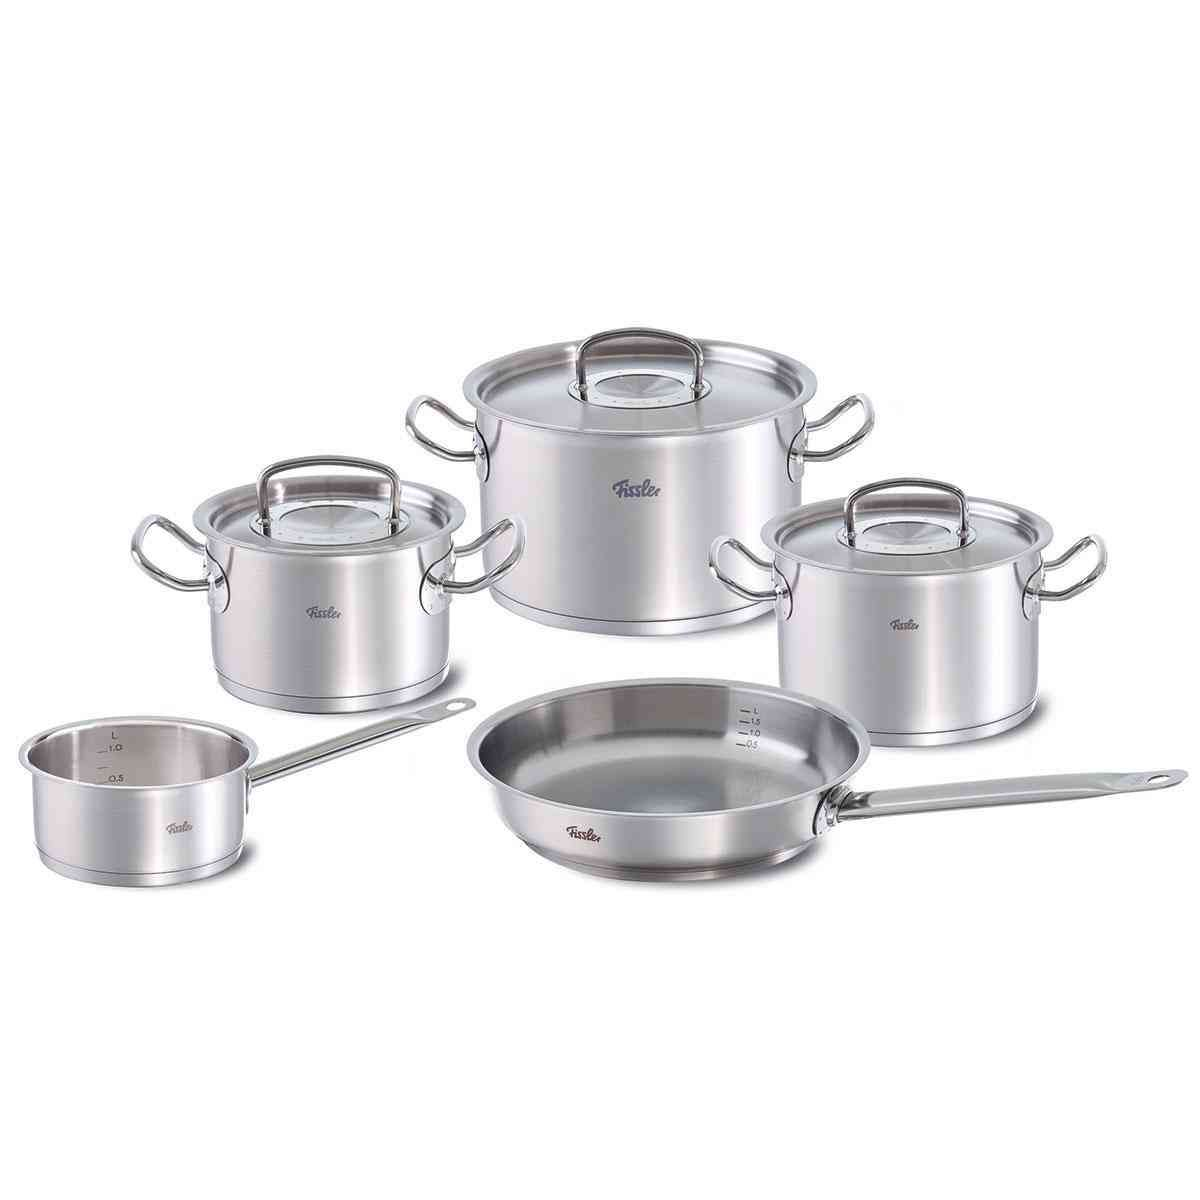 Original Profi Collection 8 Piece Set With Fry Pan And Sauce Pan Fissler Shop Fissler